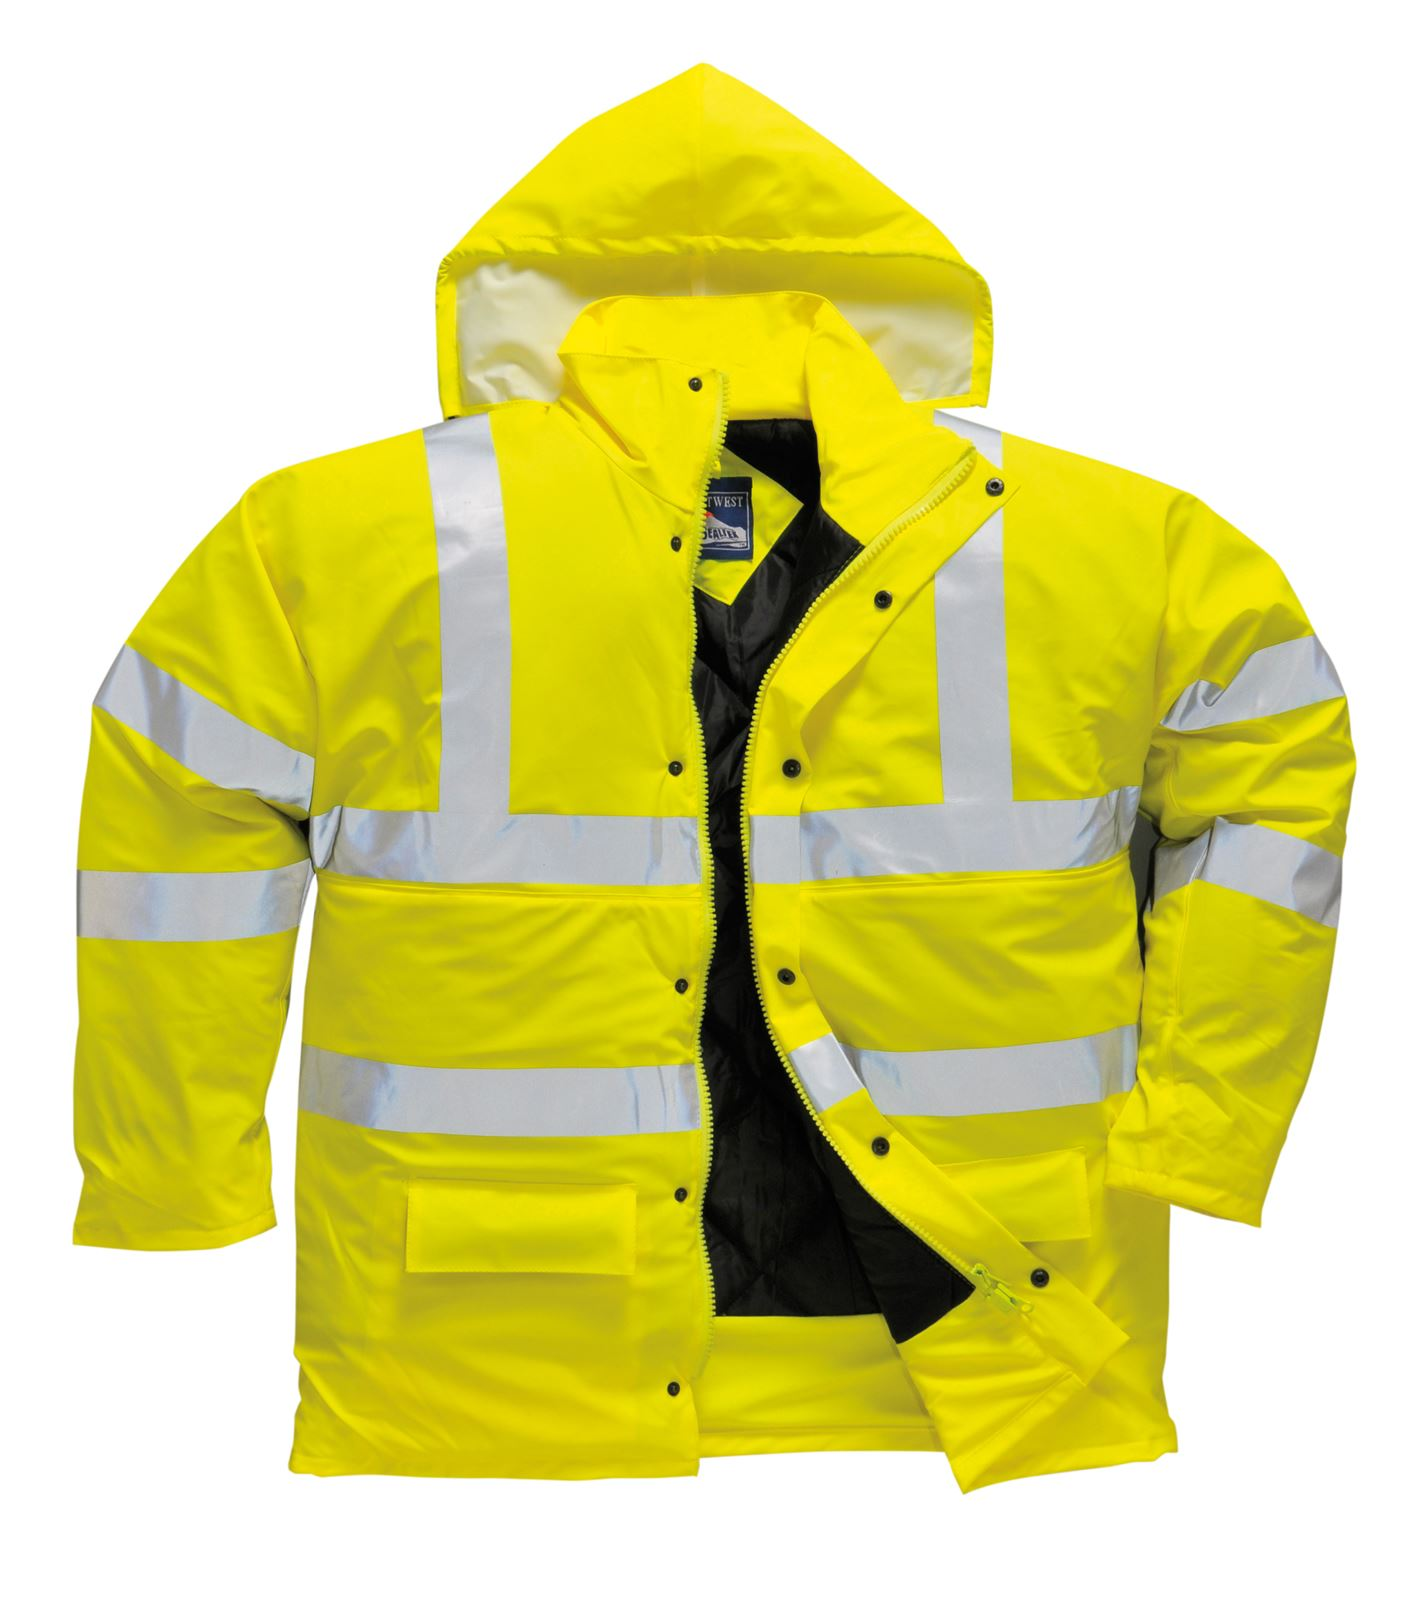 Ultra Jacket Yellow Coat Sealtex S490 Lined Visibility High Safety Hi Workwear Vis Eww1I